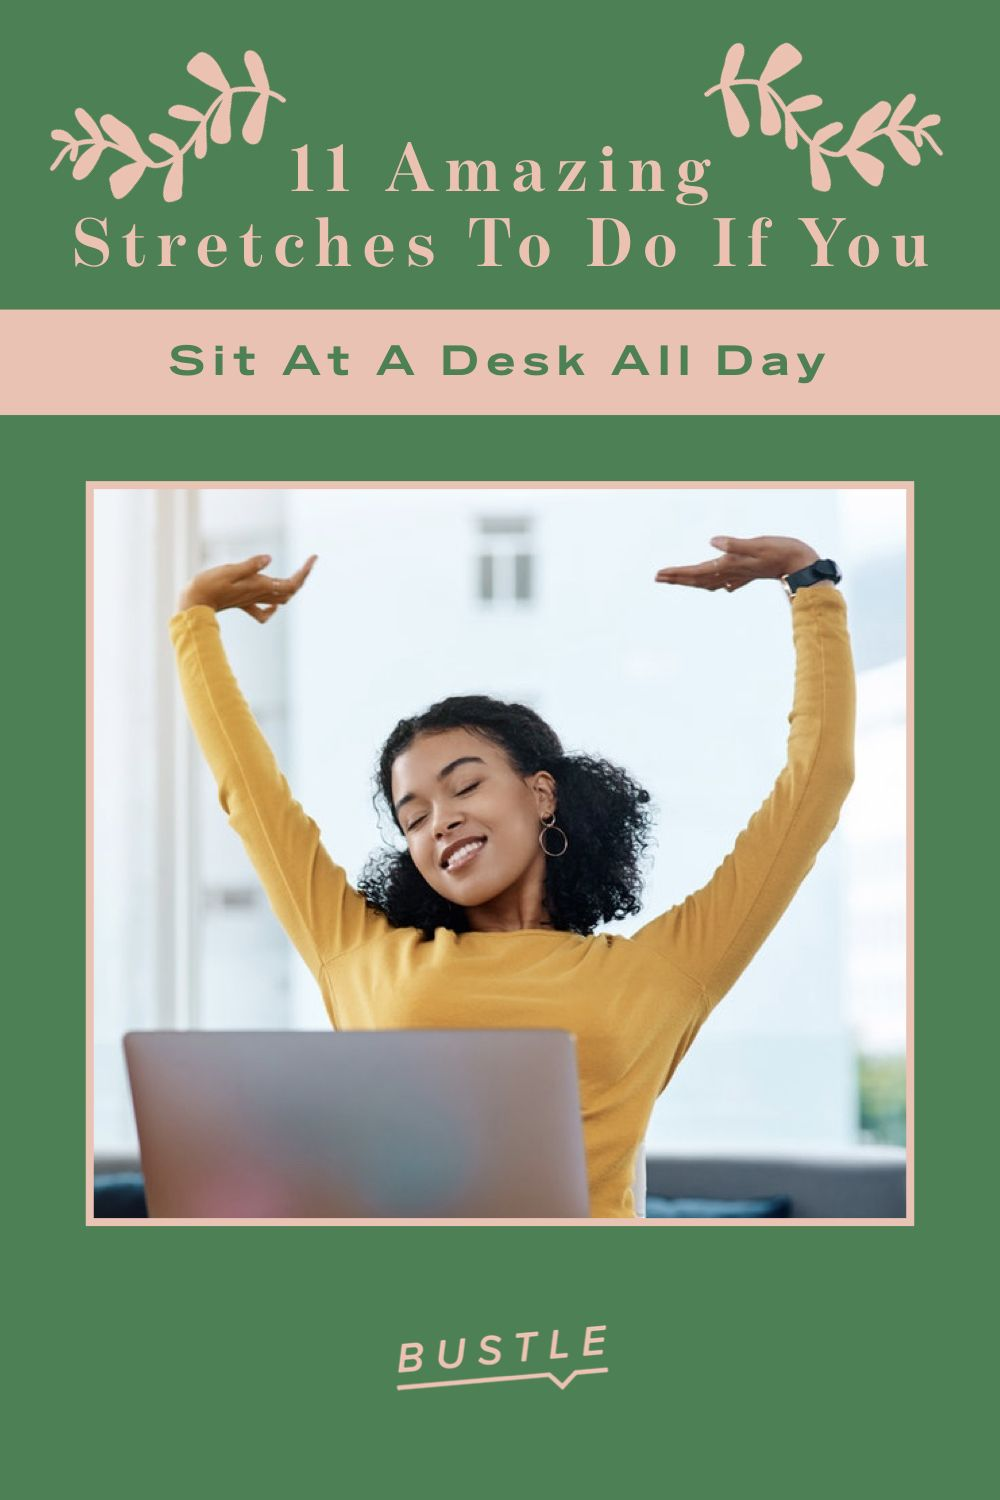 11 Amazing Stretches To Do If You Sit At A Desk All Day